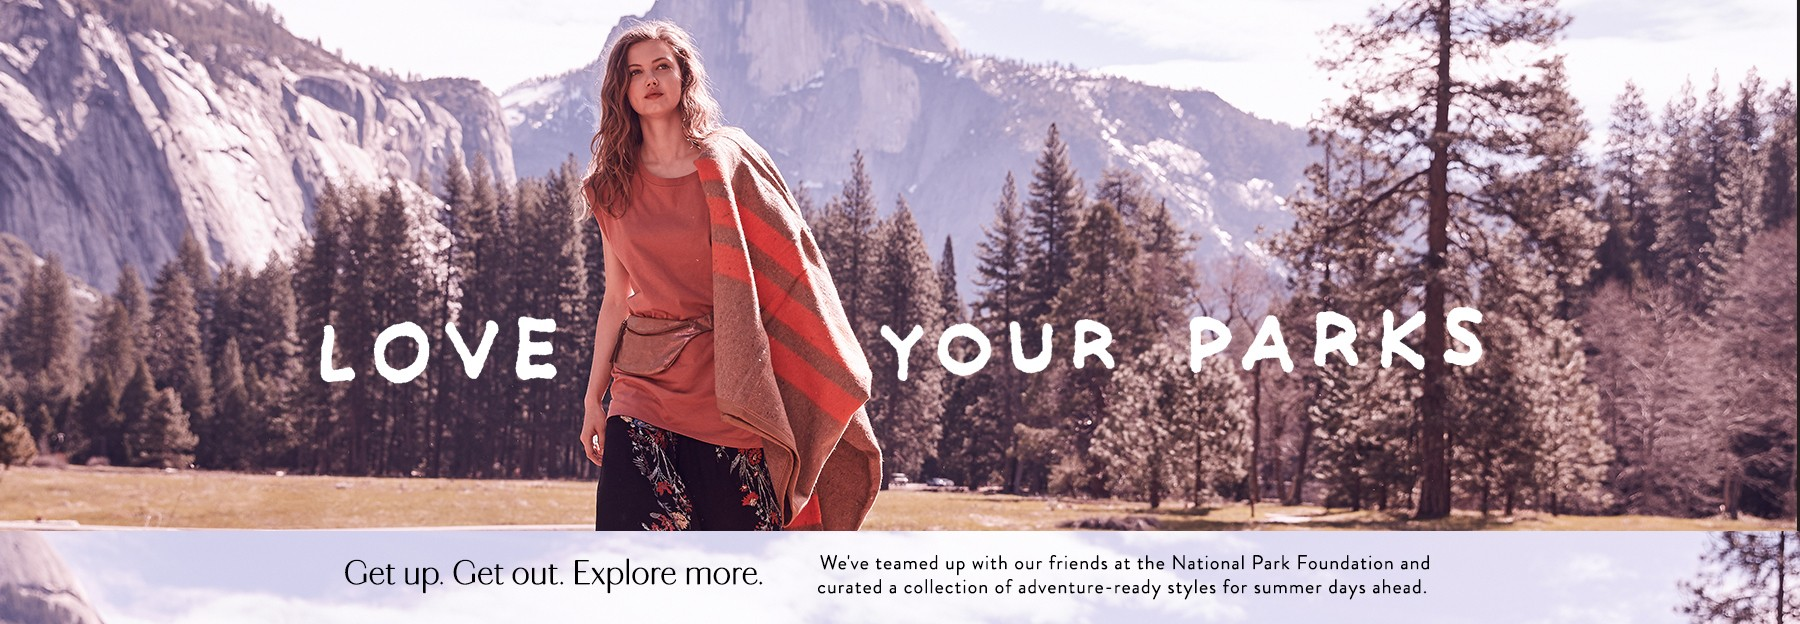 Shop the Love Your Parks Lookbook